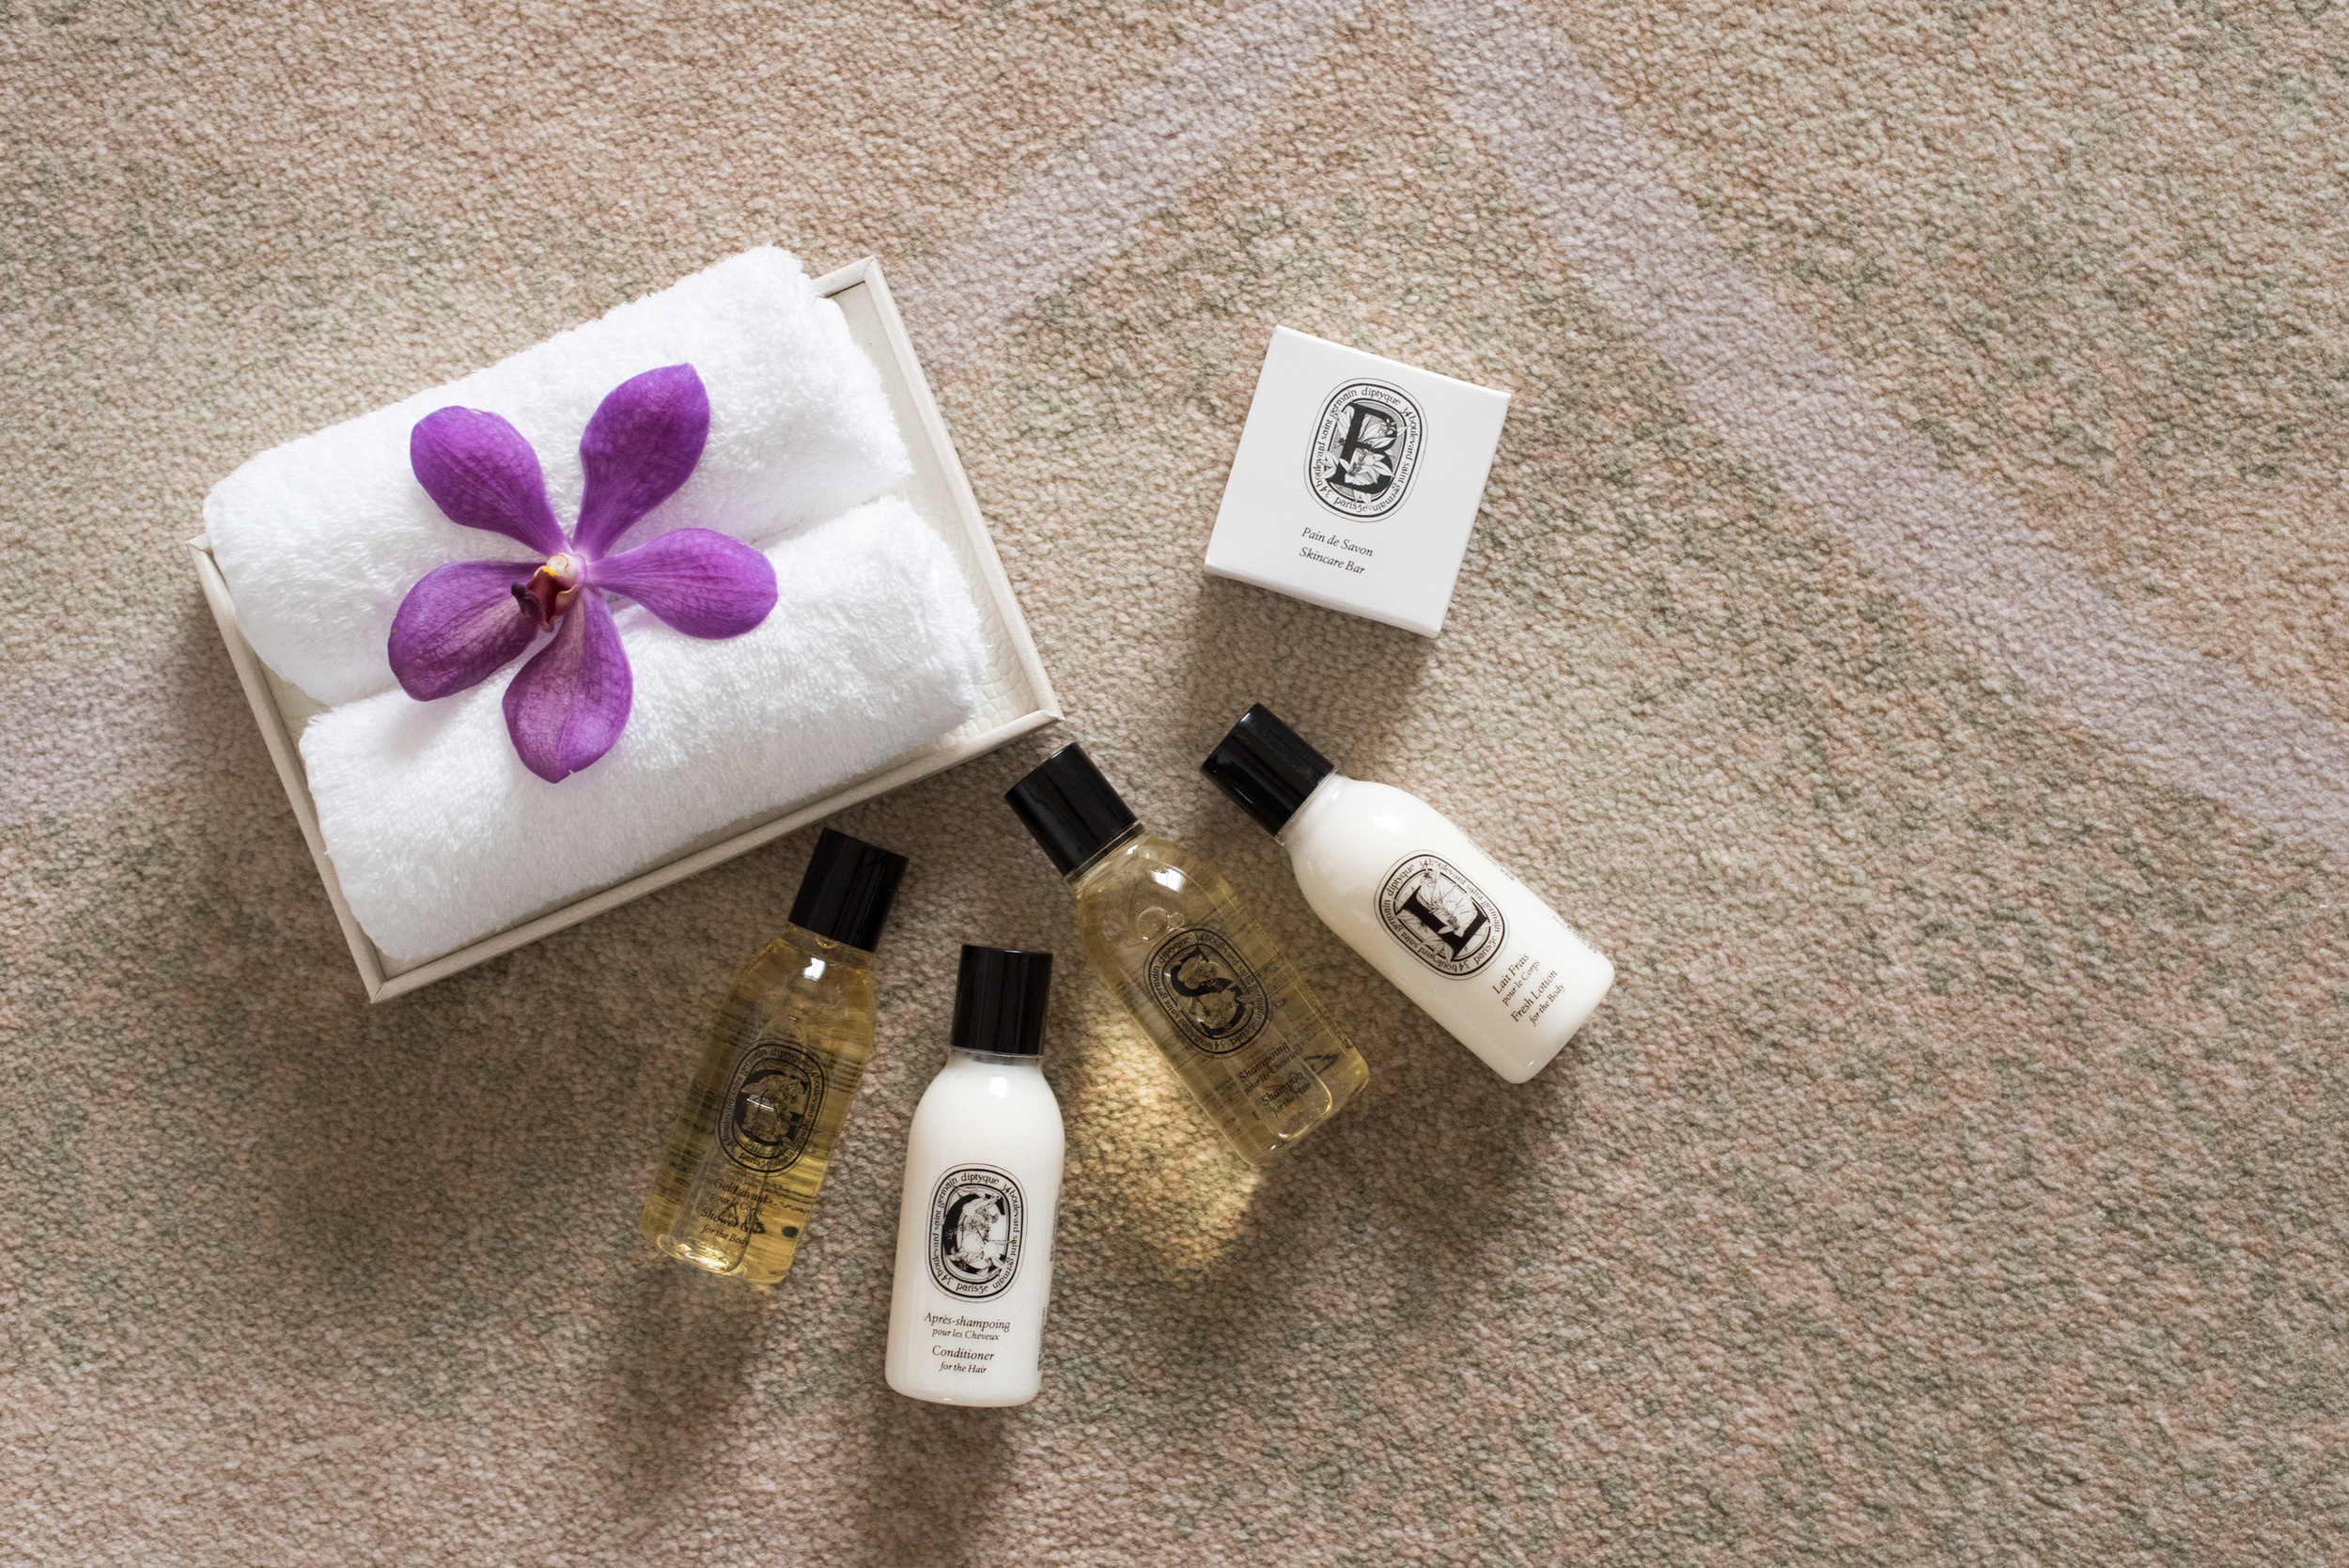 Diptyque Bath Amenities at the Mandarin Oriental, Taipei